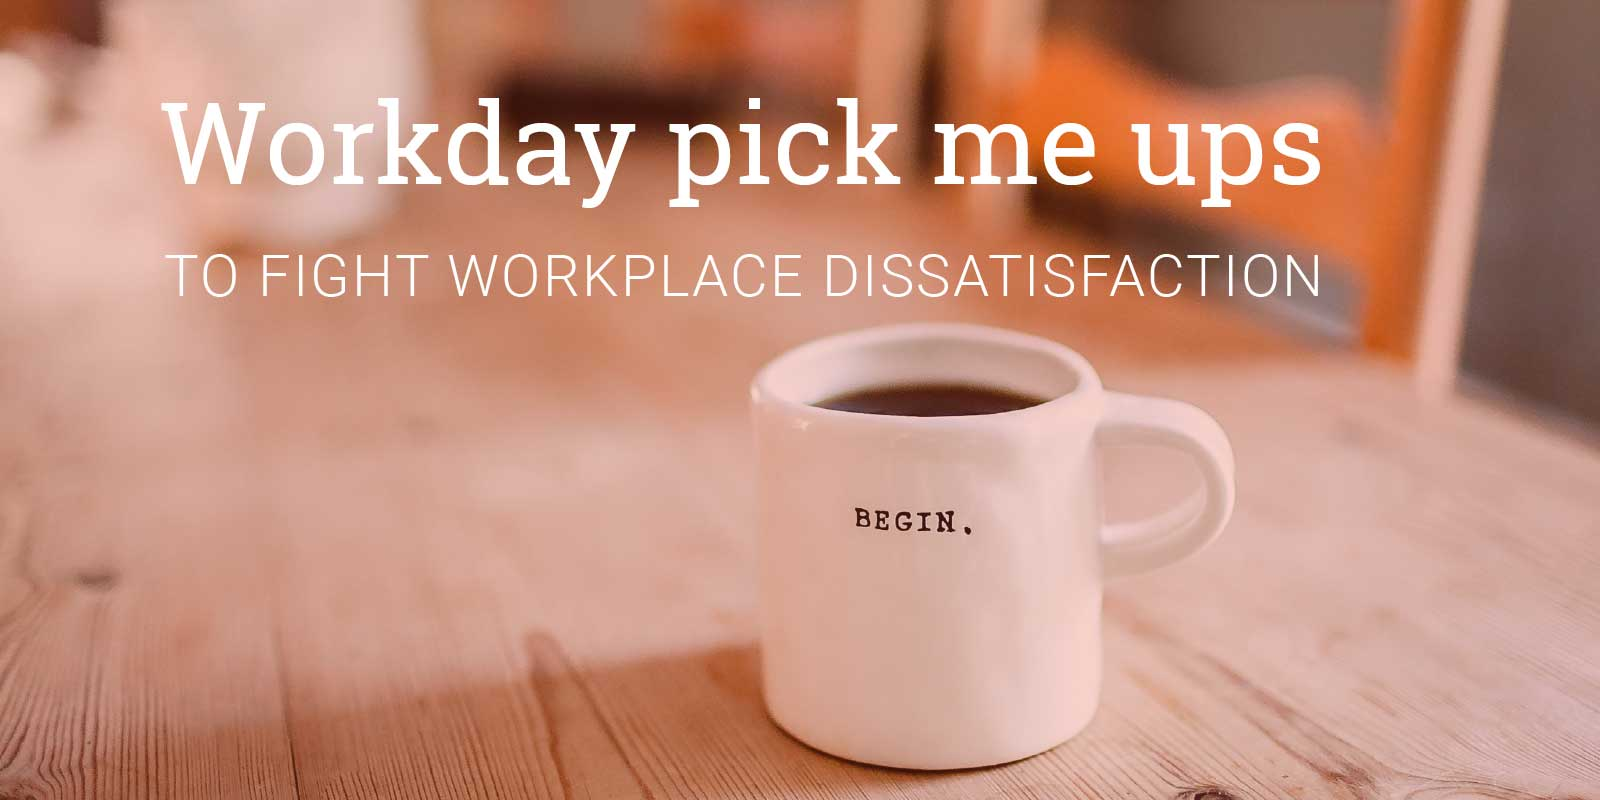 workday-pick-me-up-1.jpg